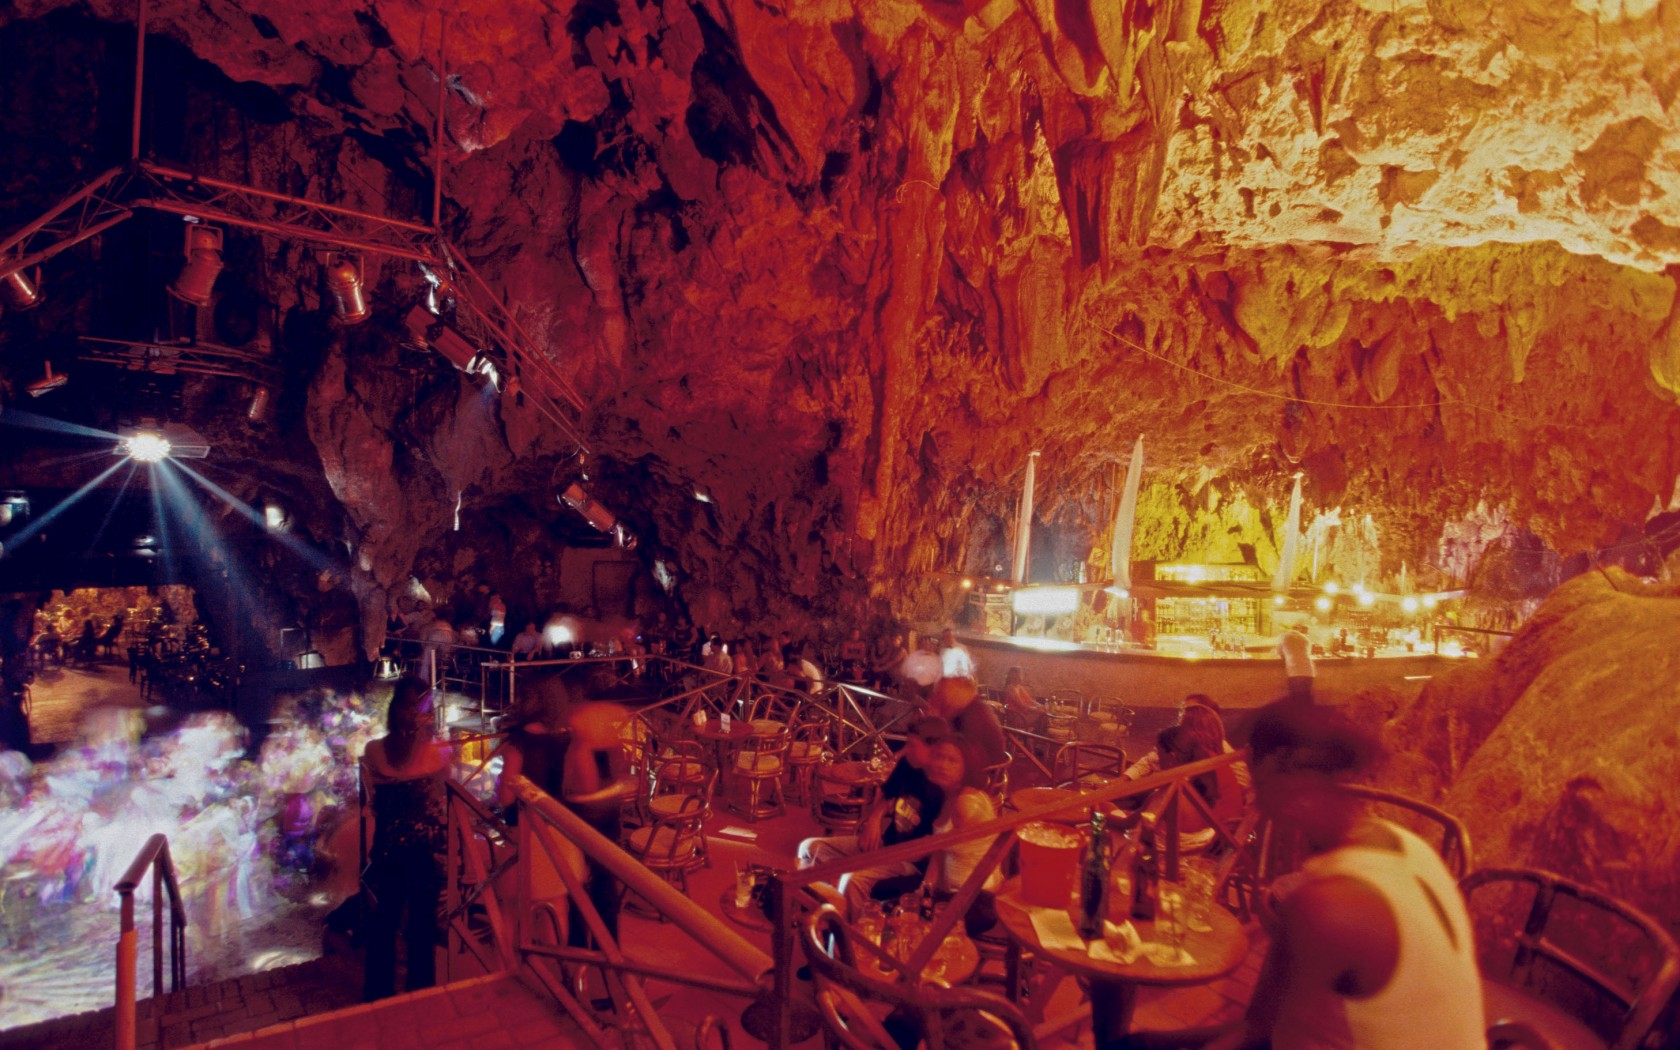 GUACARA-TAINA-THE-CAVE-Santo-Domingo-Dominican-Republic